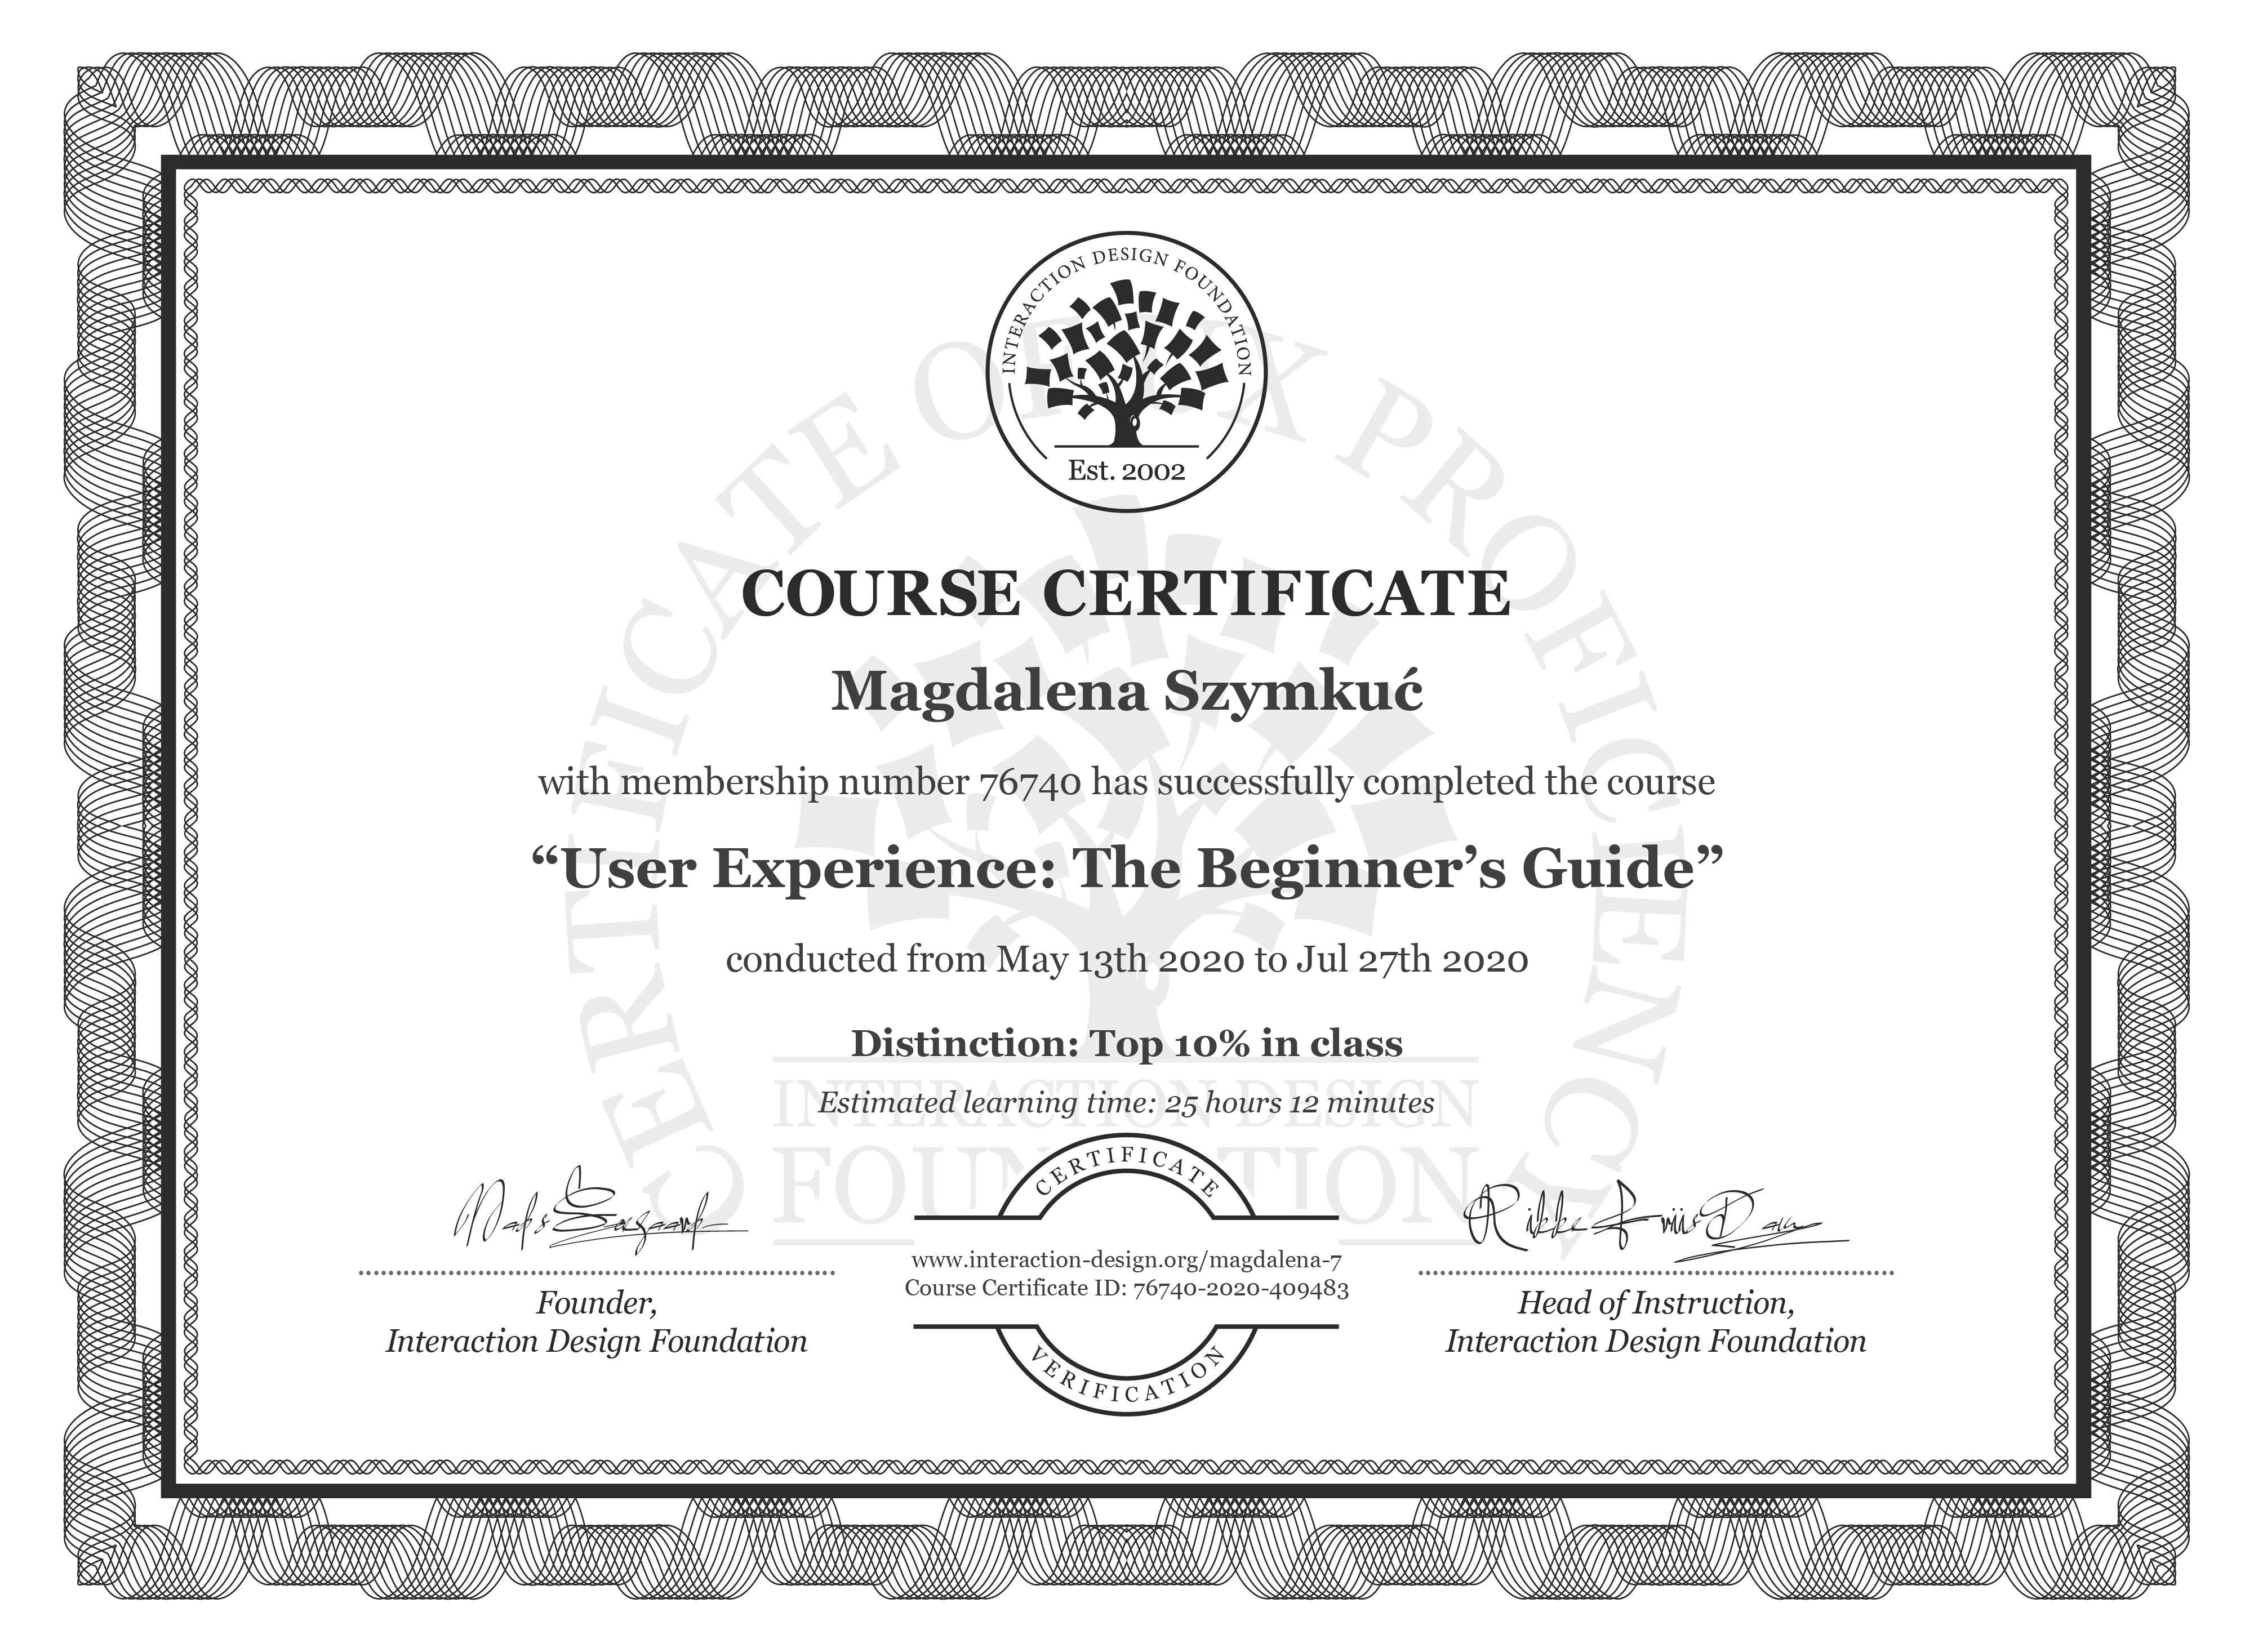 Magdalena Szymkuć's Course Certificate: Become a UX Designer from Scratch